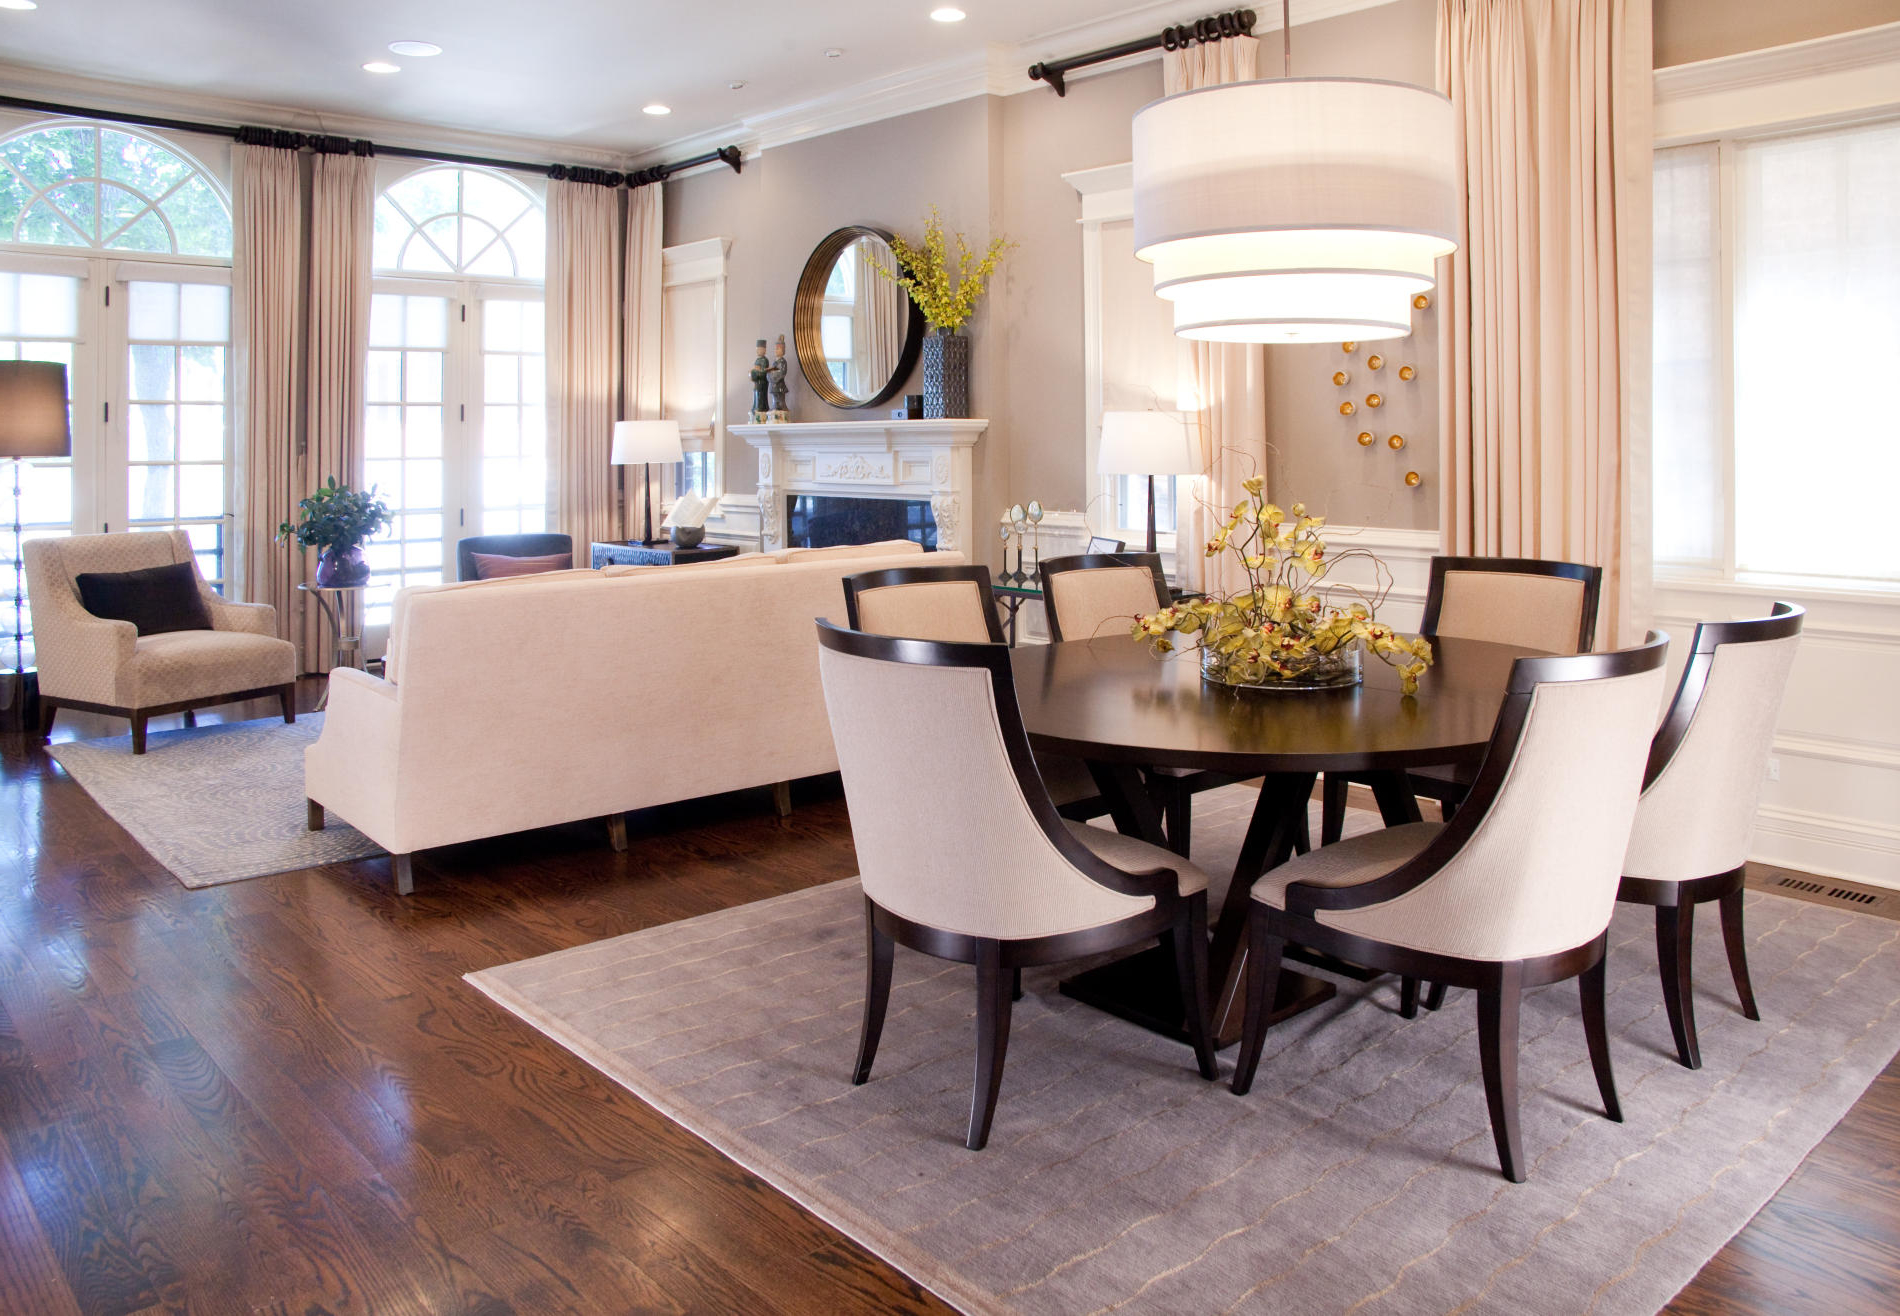 30 Best Formal Dining Room Design And Decor Ideas #828 | Dining ...